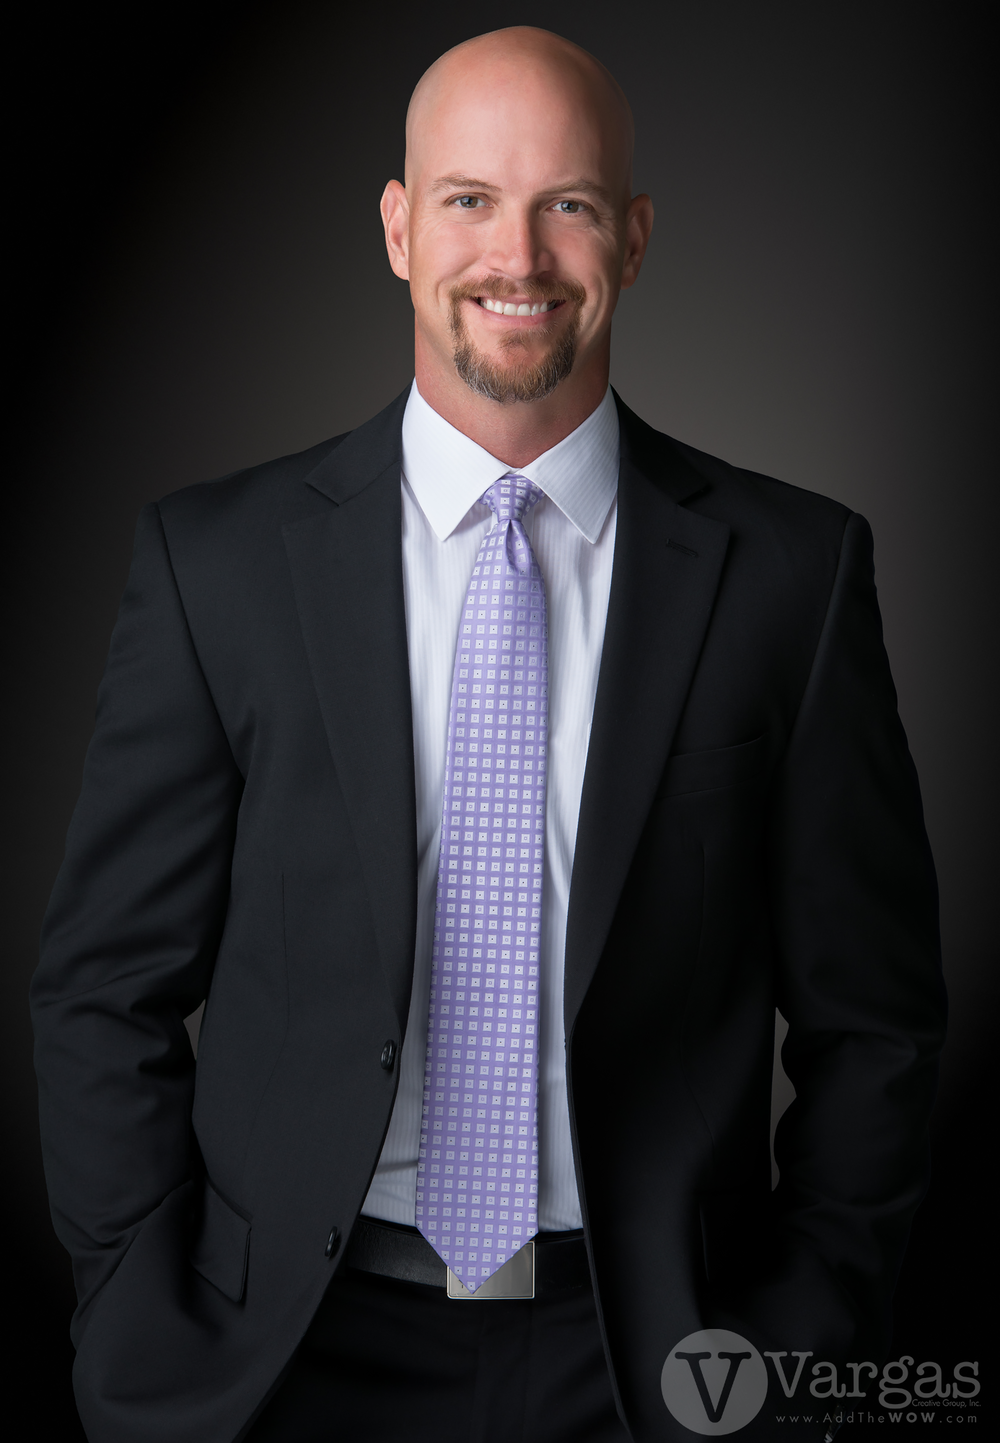 Nate-Pruit-head-shot-portrait-realtor-title.png